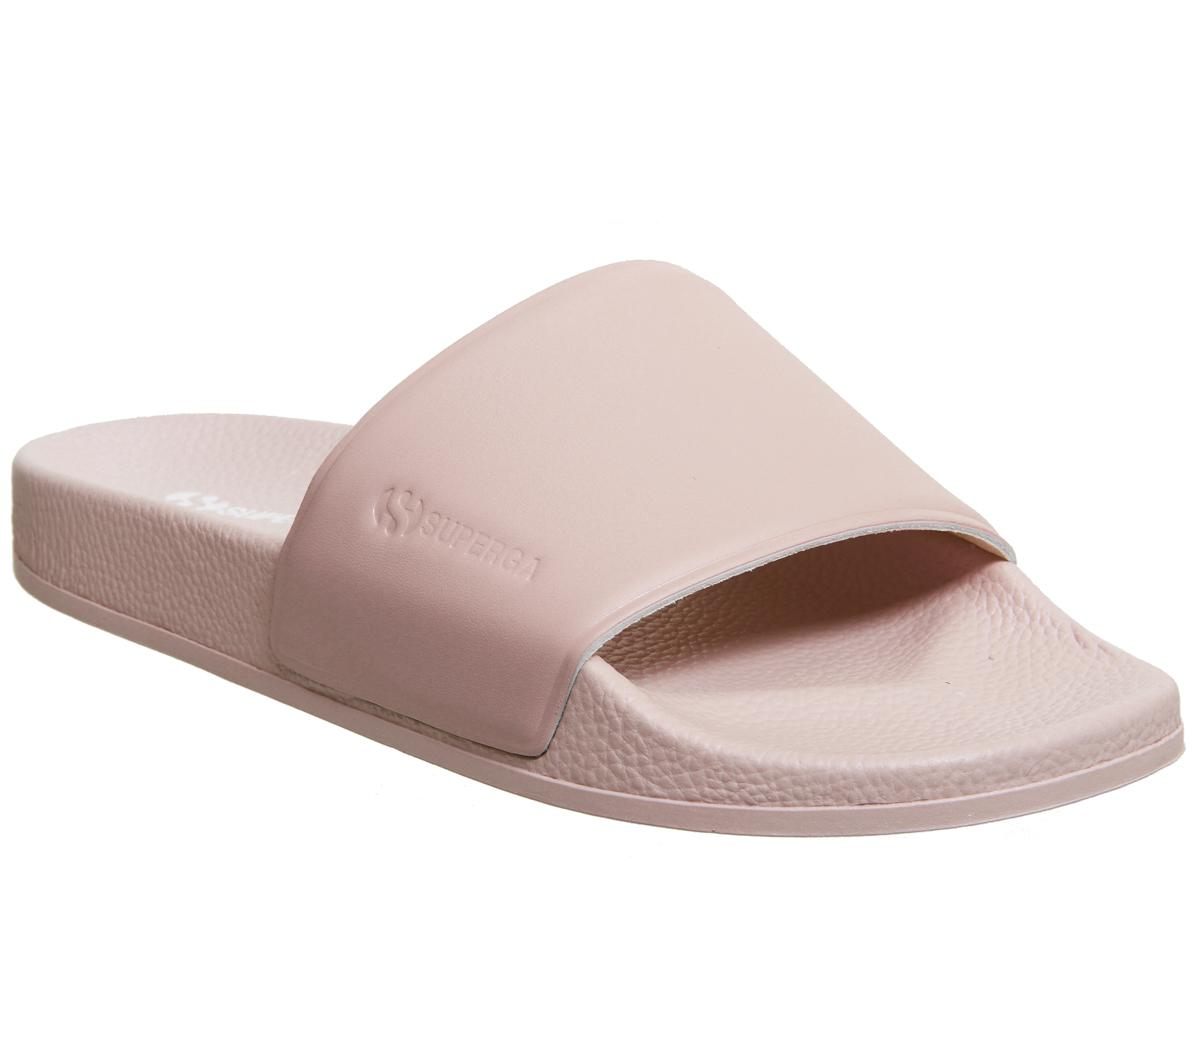 5.5 UK Superga 1908 Womens Pink White Synthetic Slide Sandals